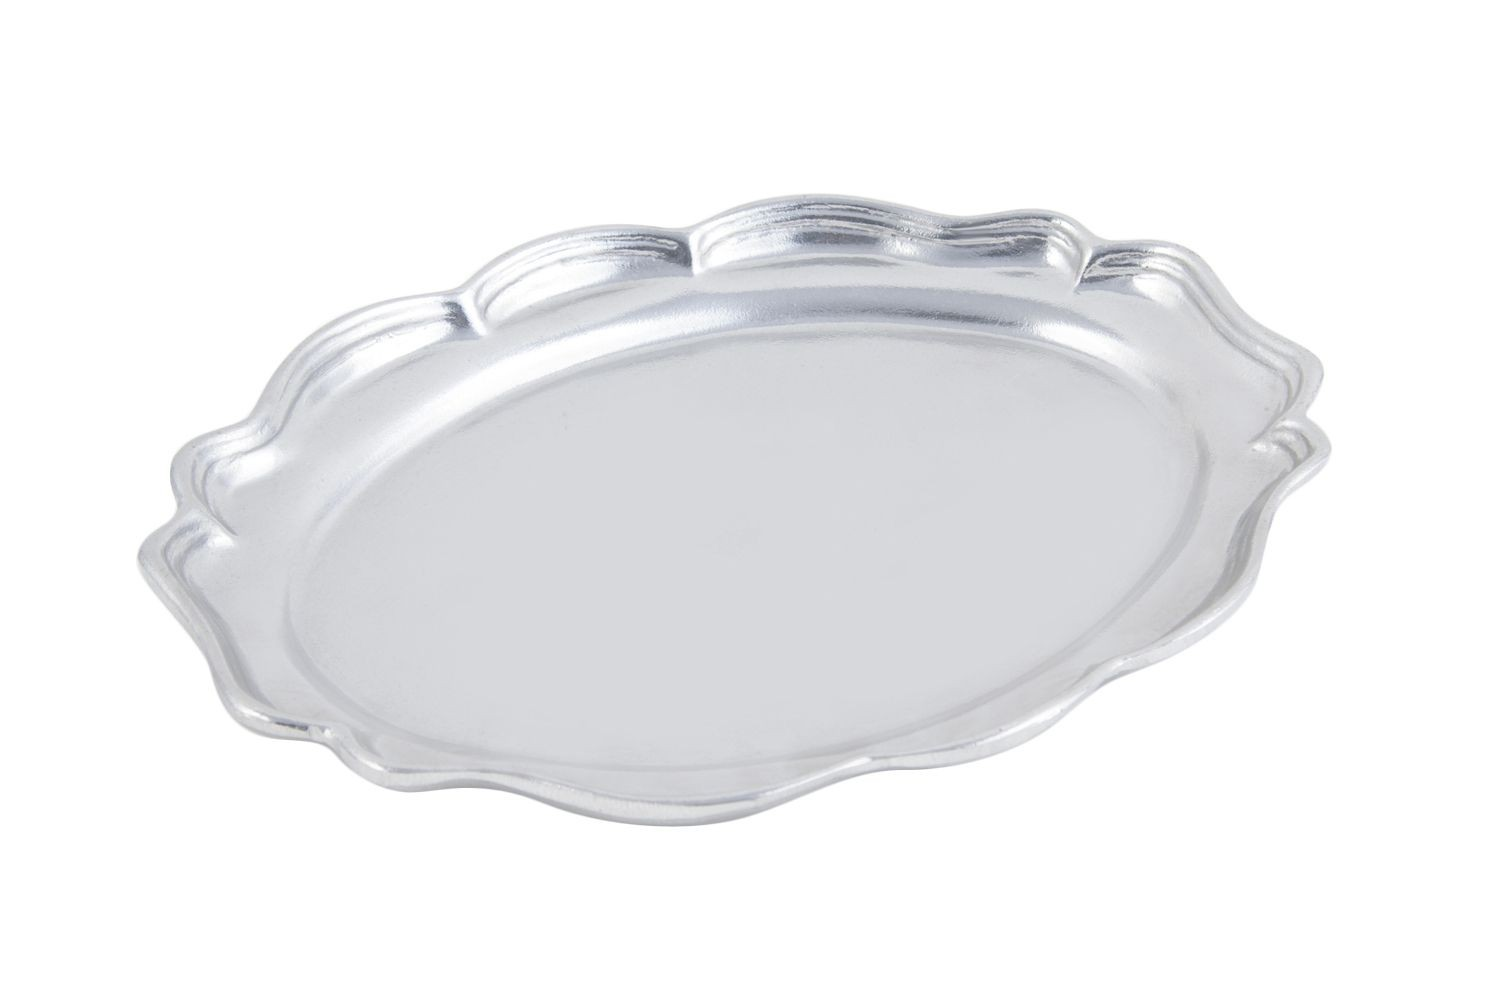 "Bon Chef 2021P Queen Anne Oval Platter, Pewter Glo 8"" x 11 1/2"", Set of 3"